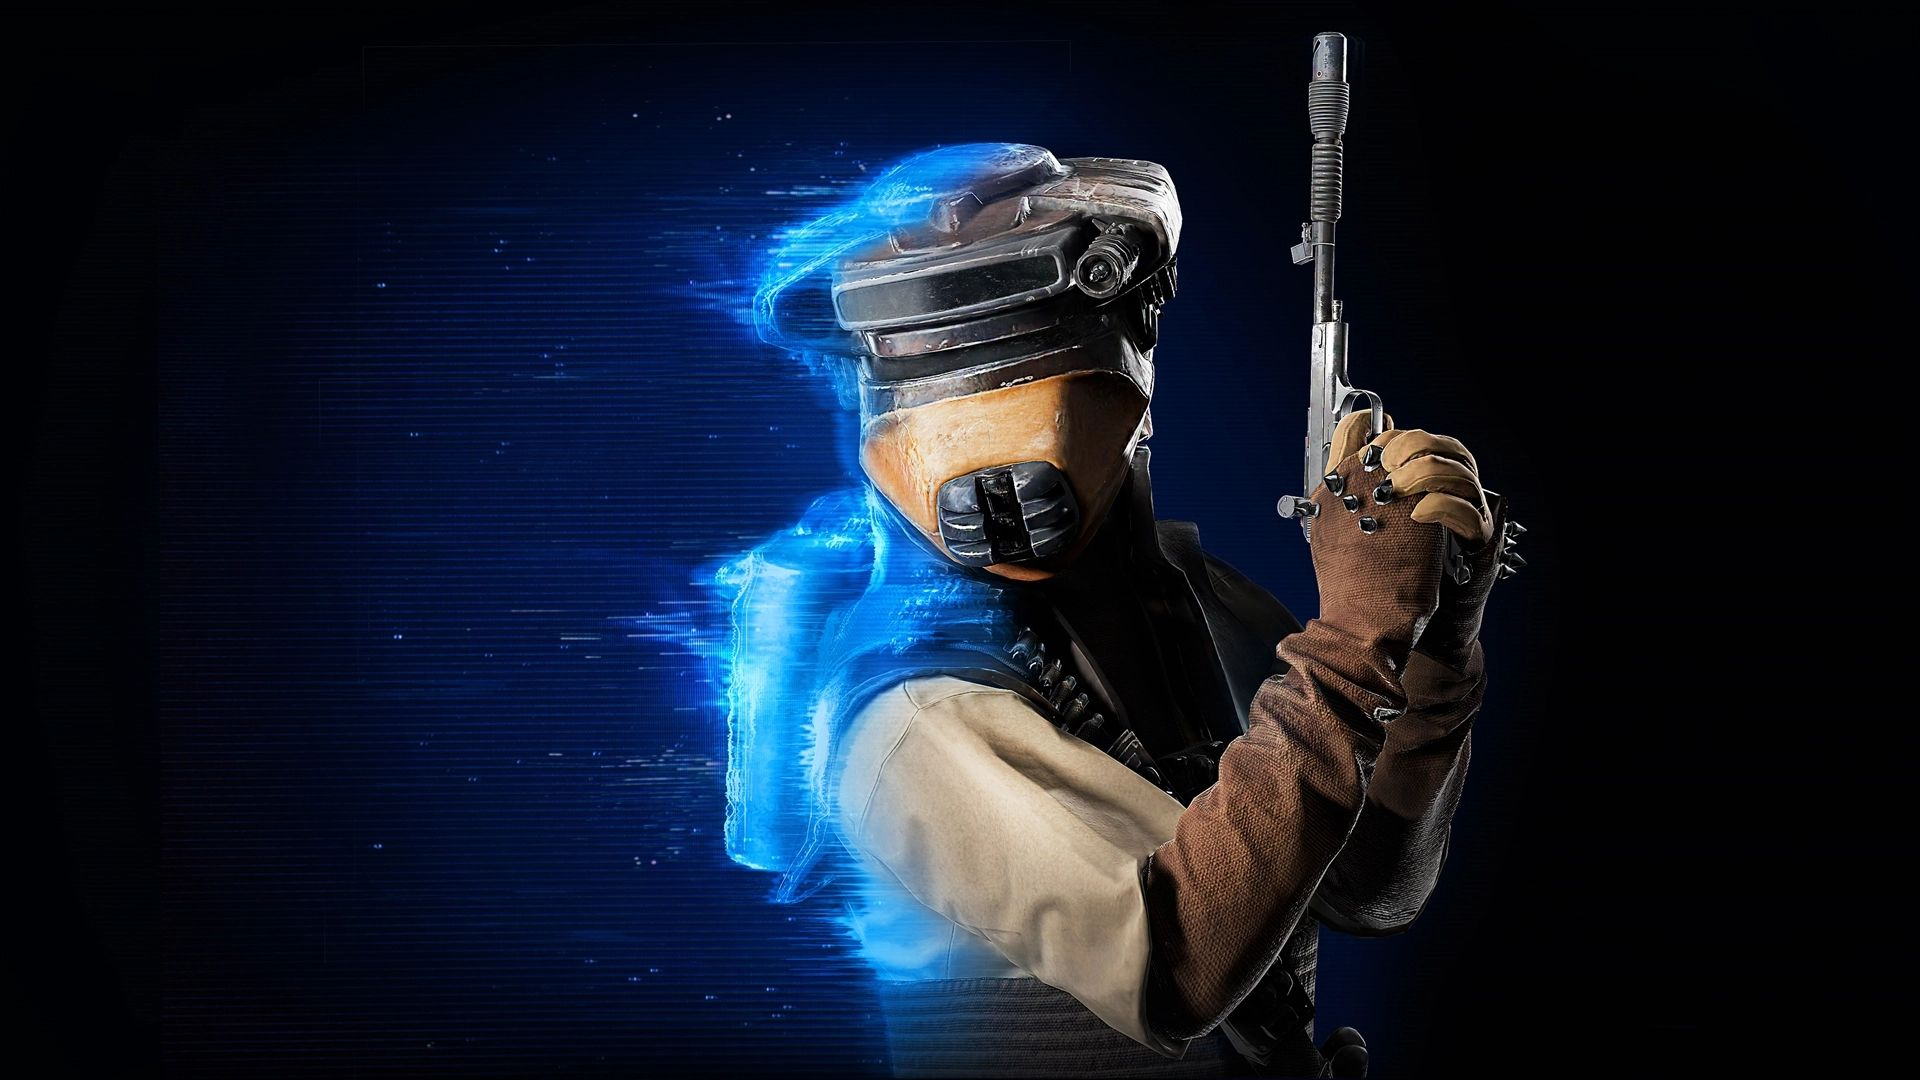 Han Solo season kicks off next week in Star Wars Battlefront 2 - photo#18